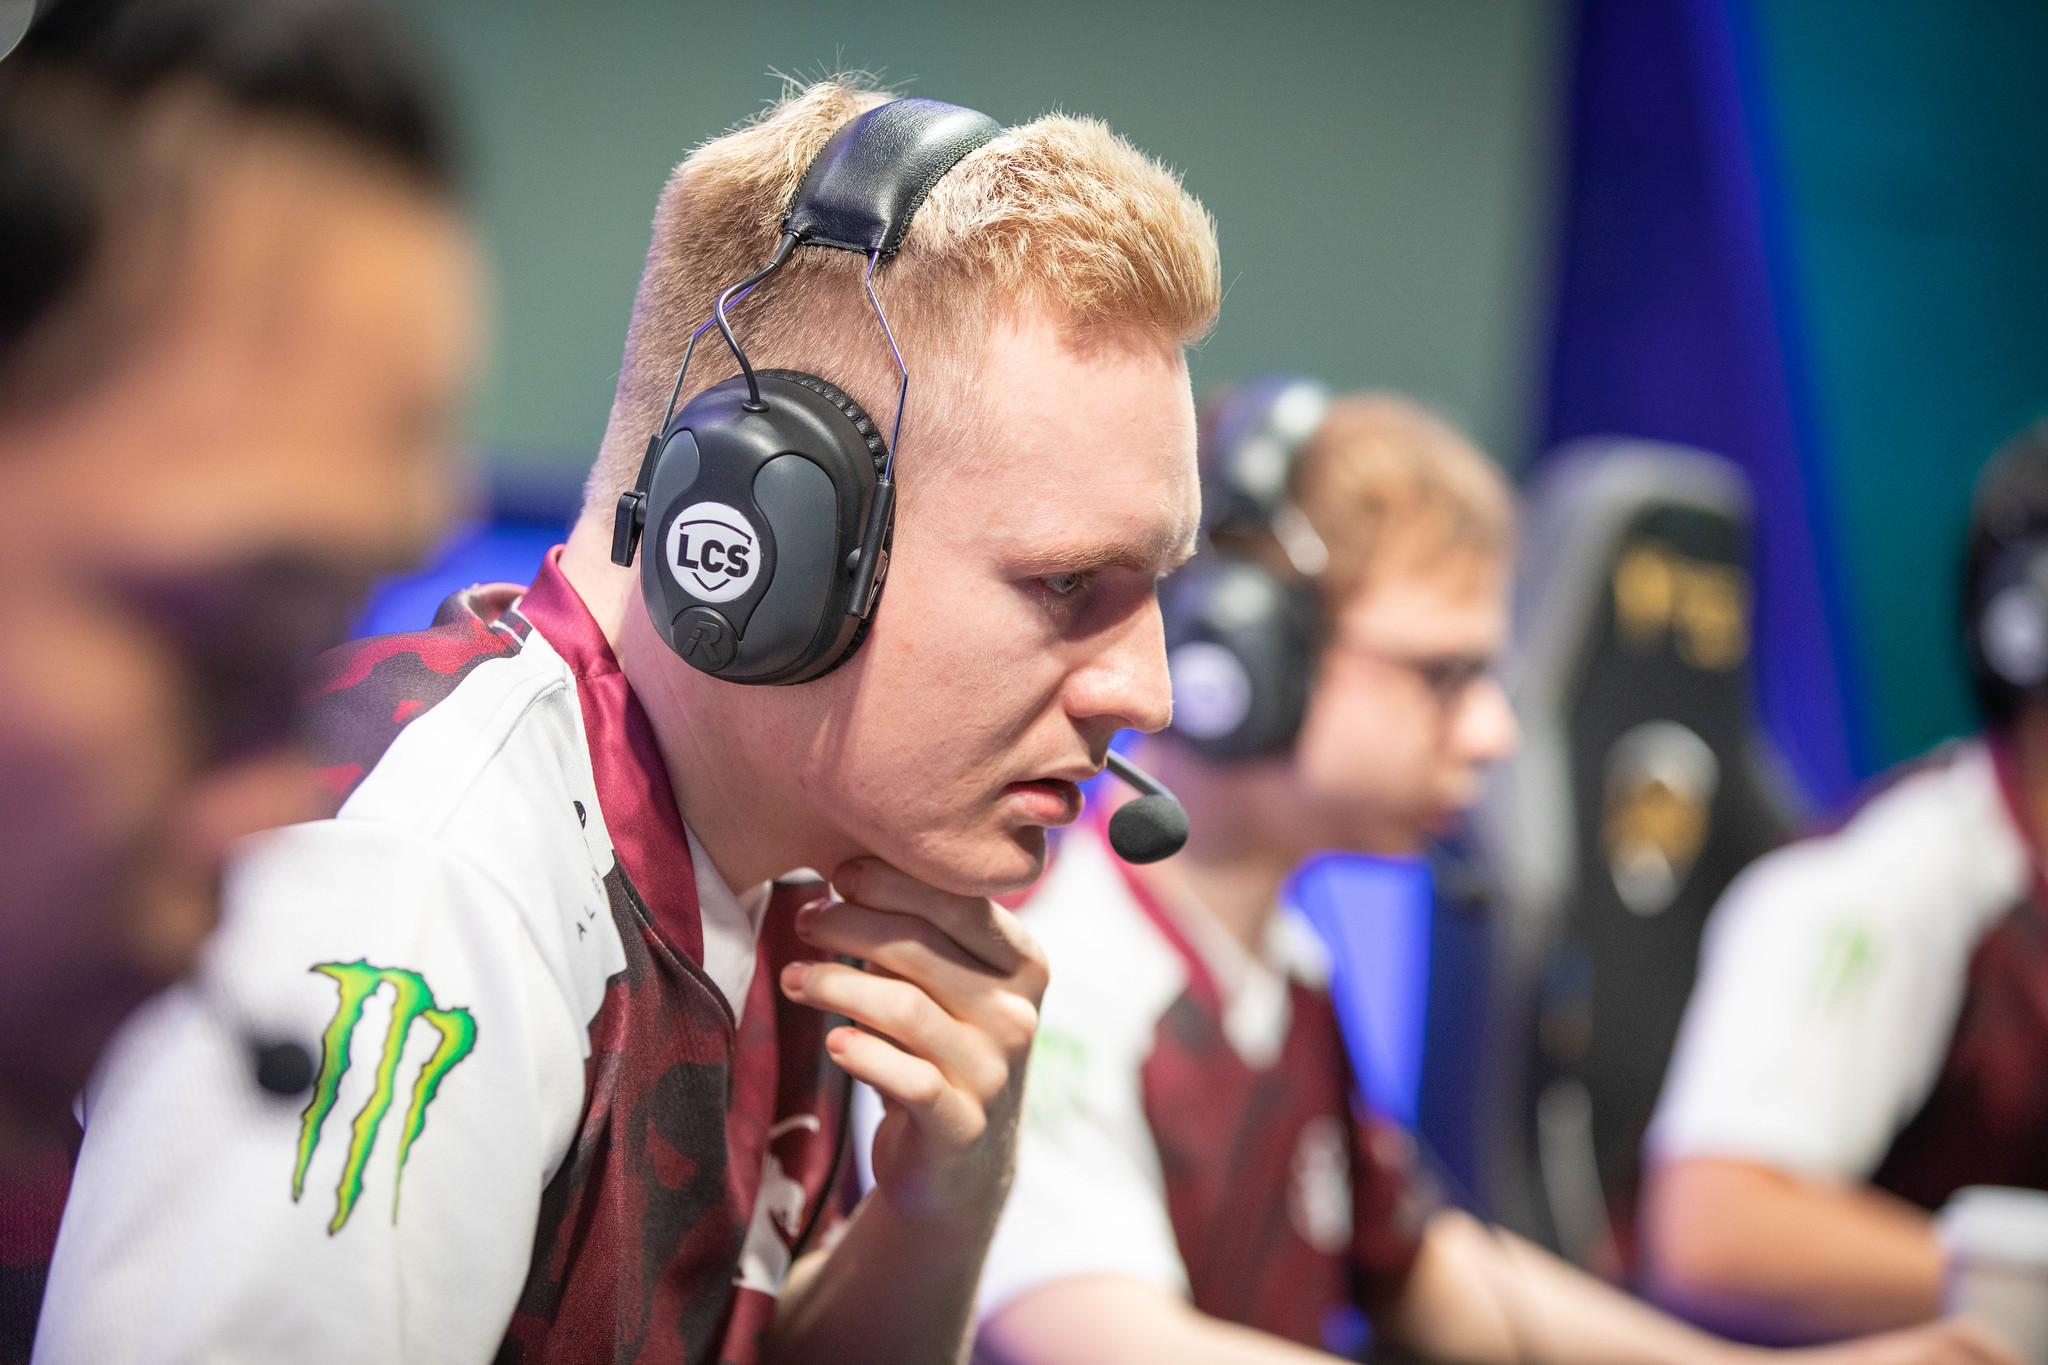 Broxah playing for Team Liquid in LCS